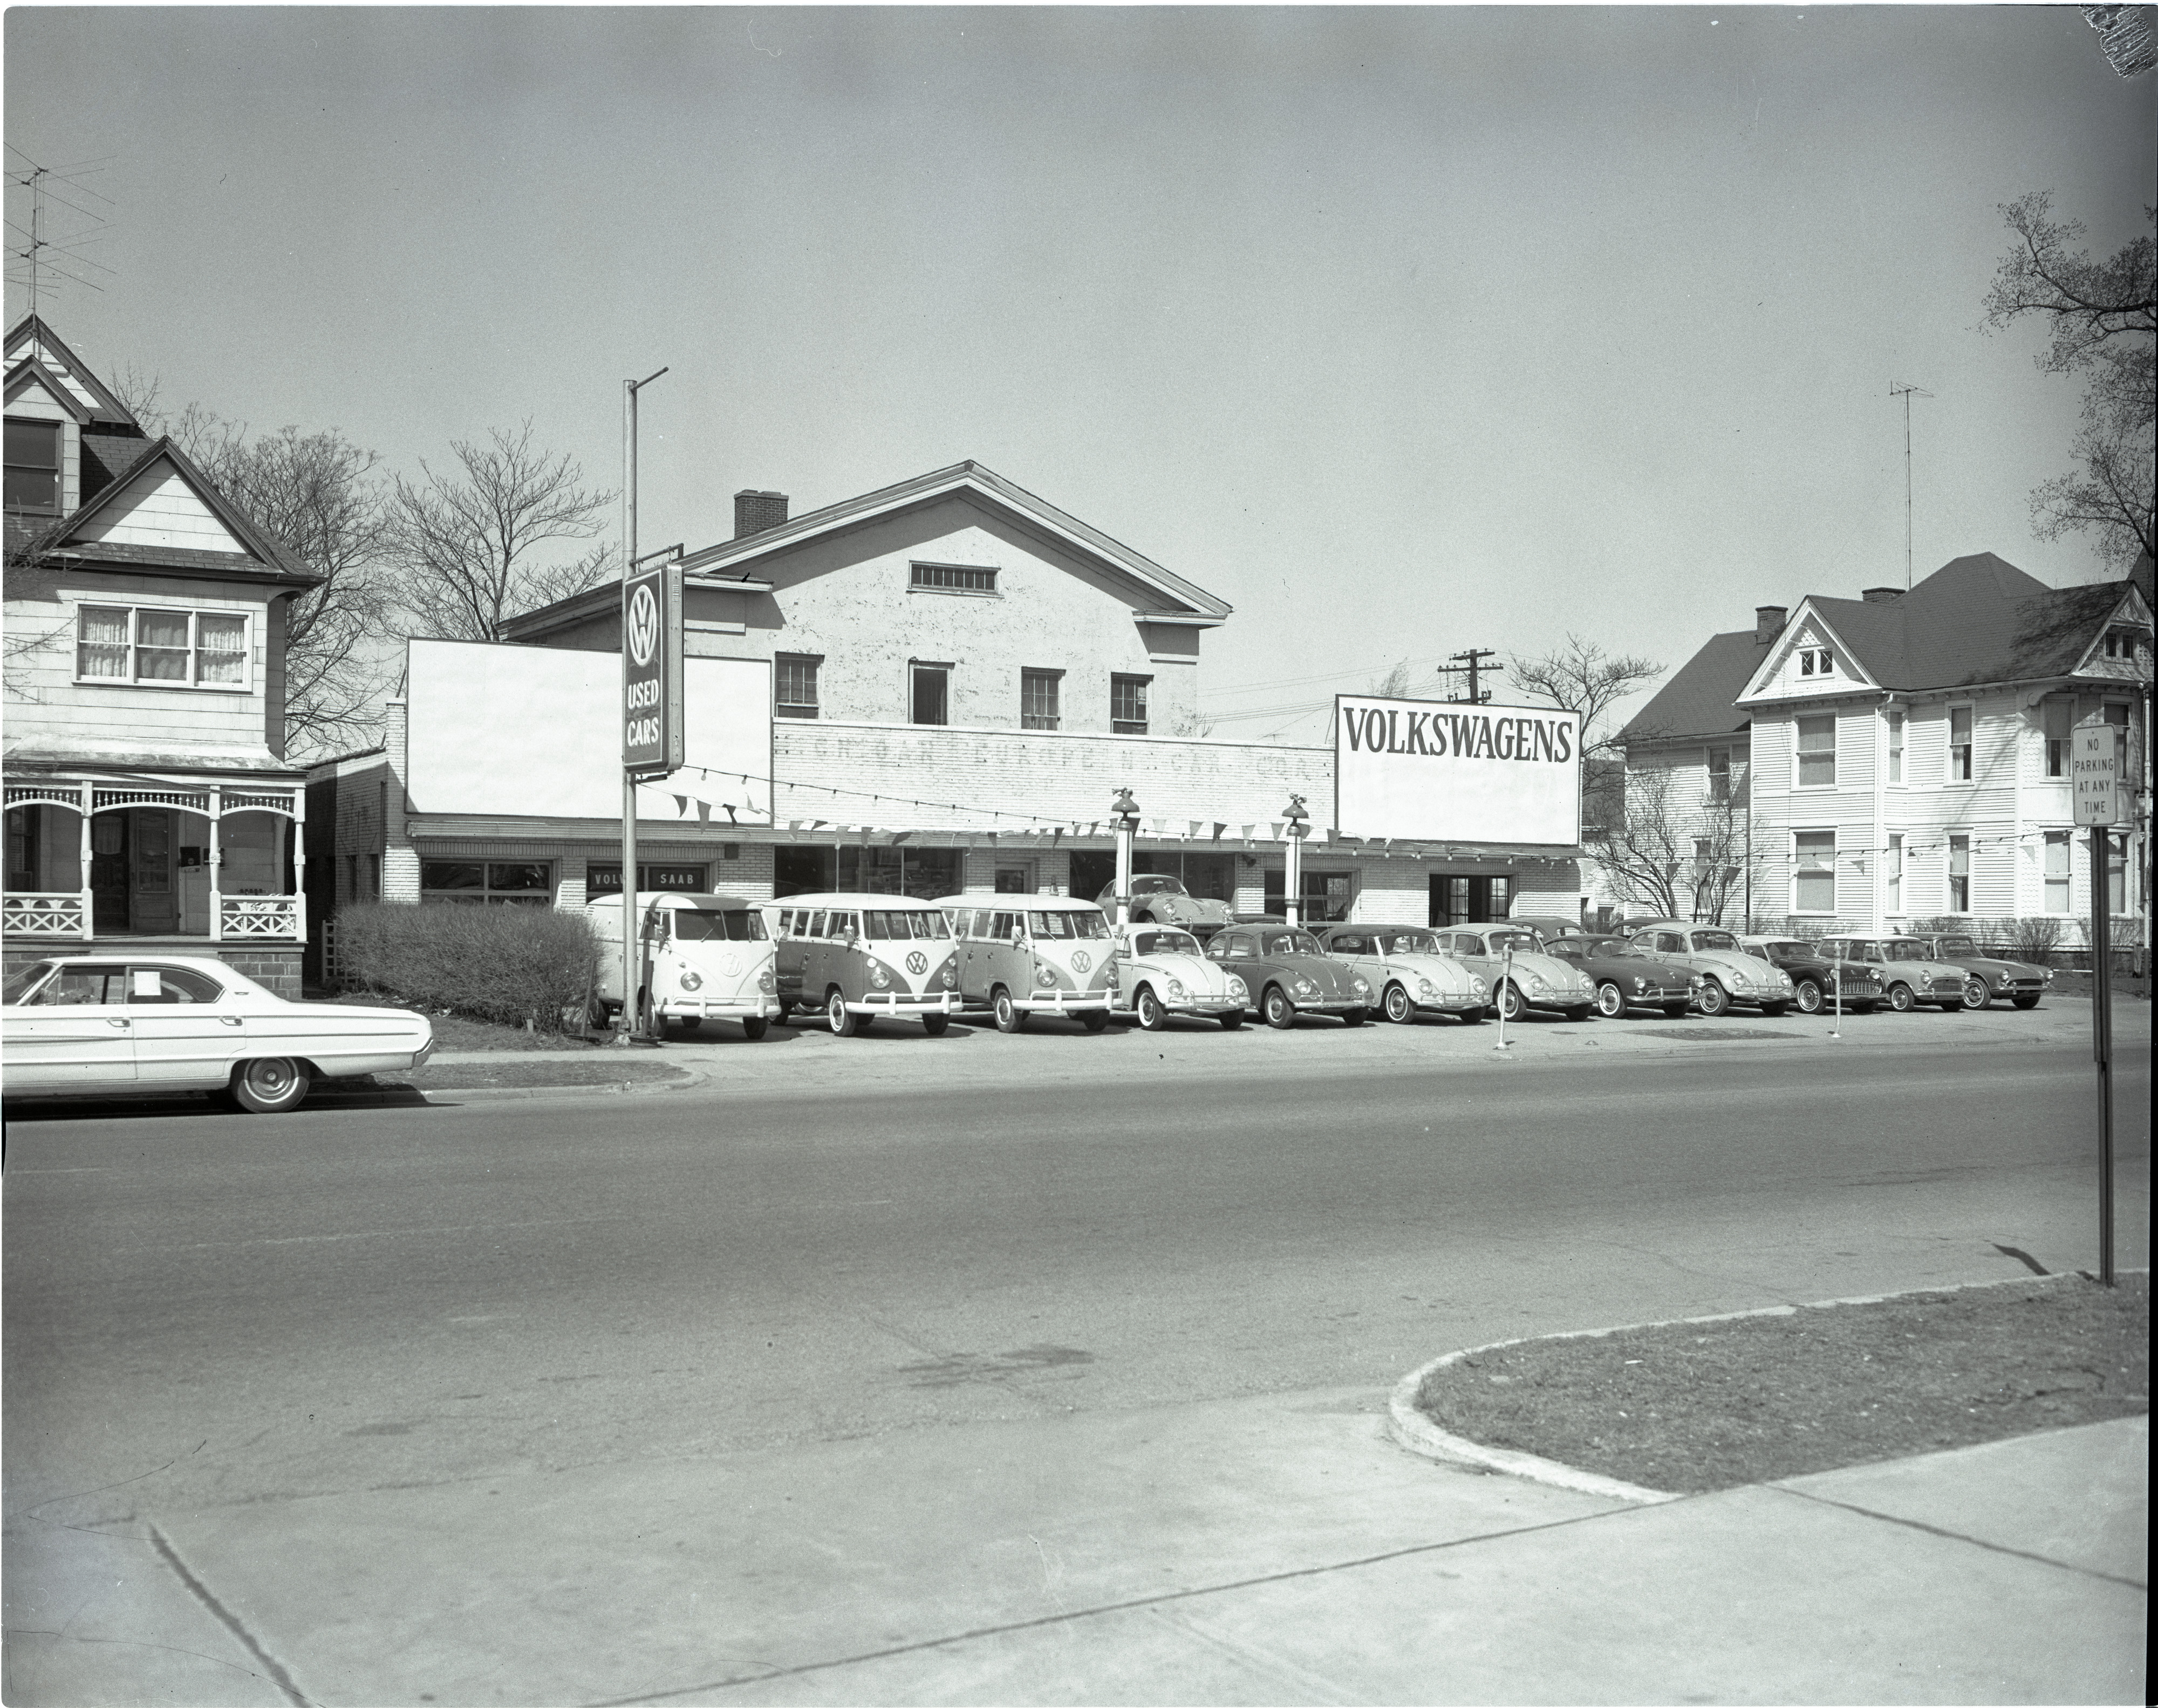 Michigan European Car Corp. - 424 S. Main Street, June 1964 image